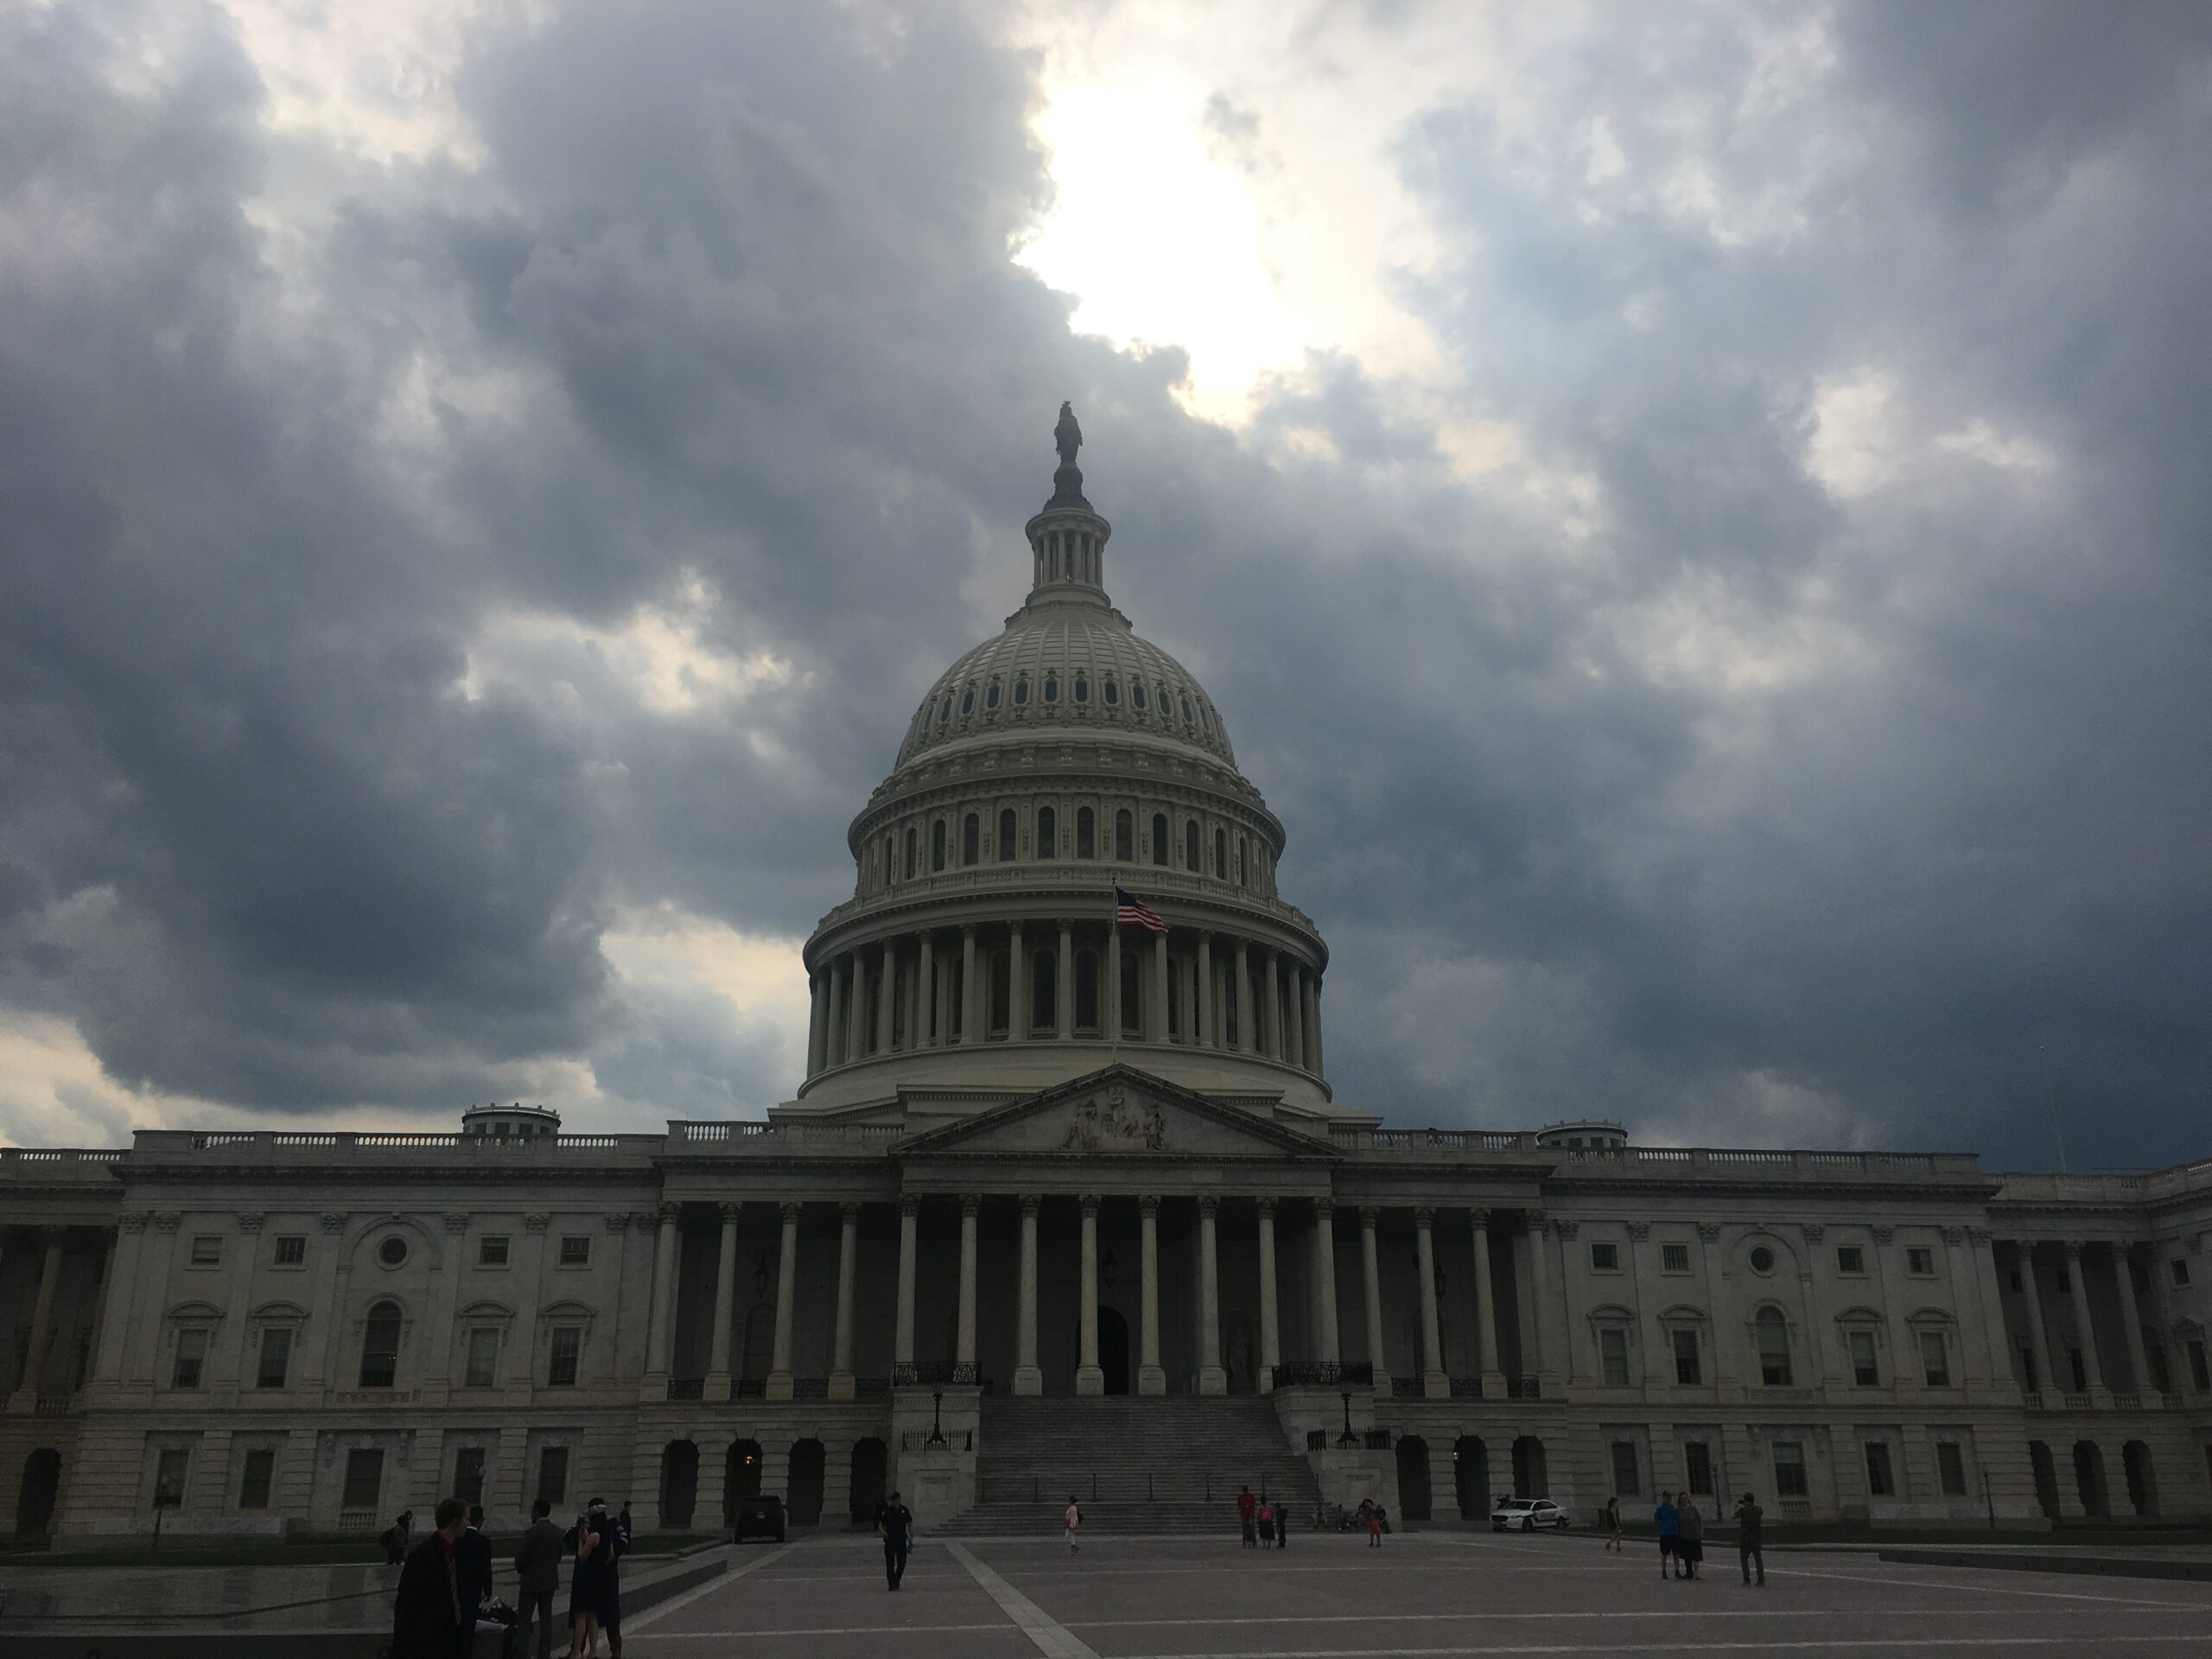 Dark clouds over the U.S. Capitol building